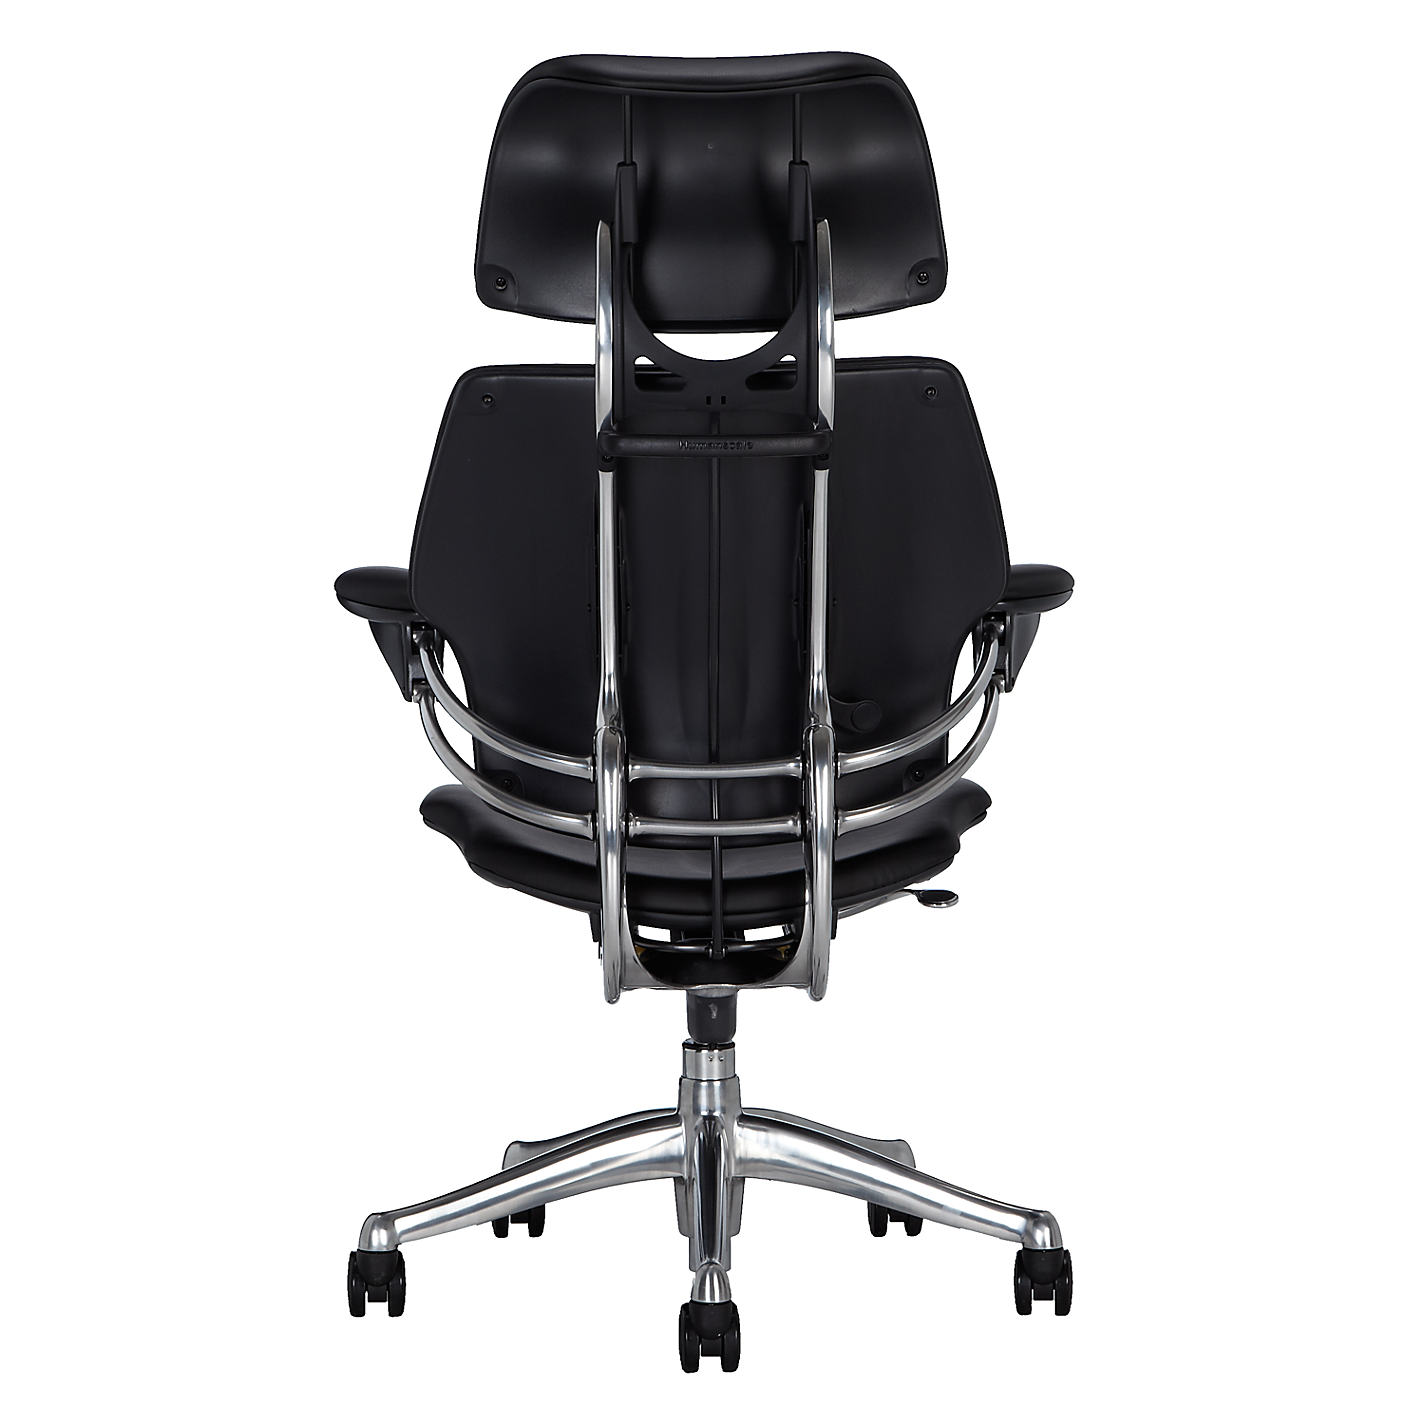 Buy Humanscale Freedom fice Chair with Headrest